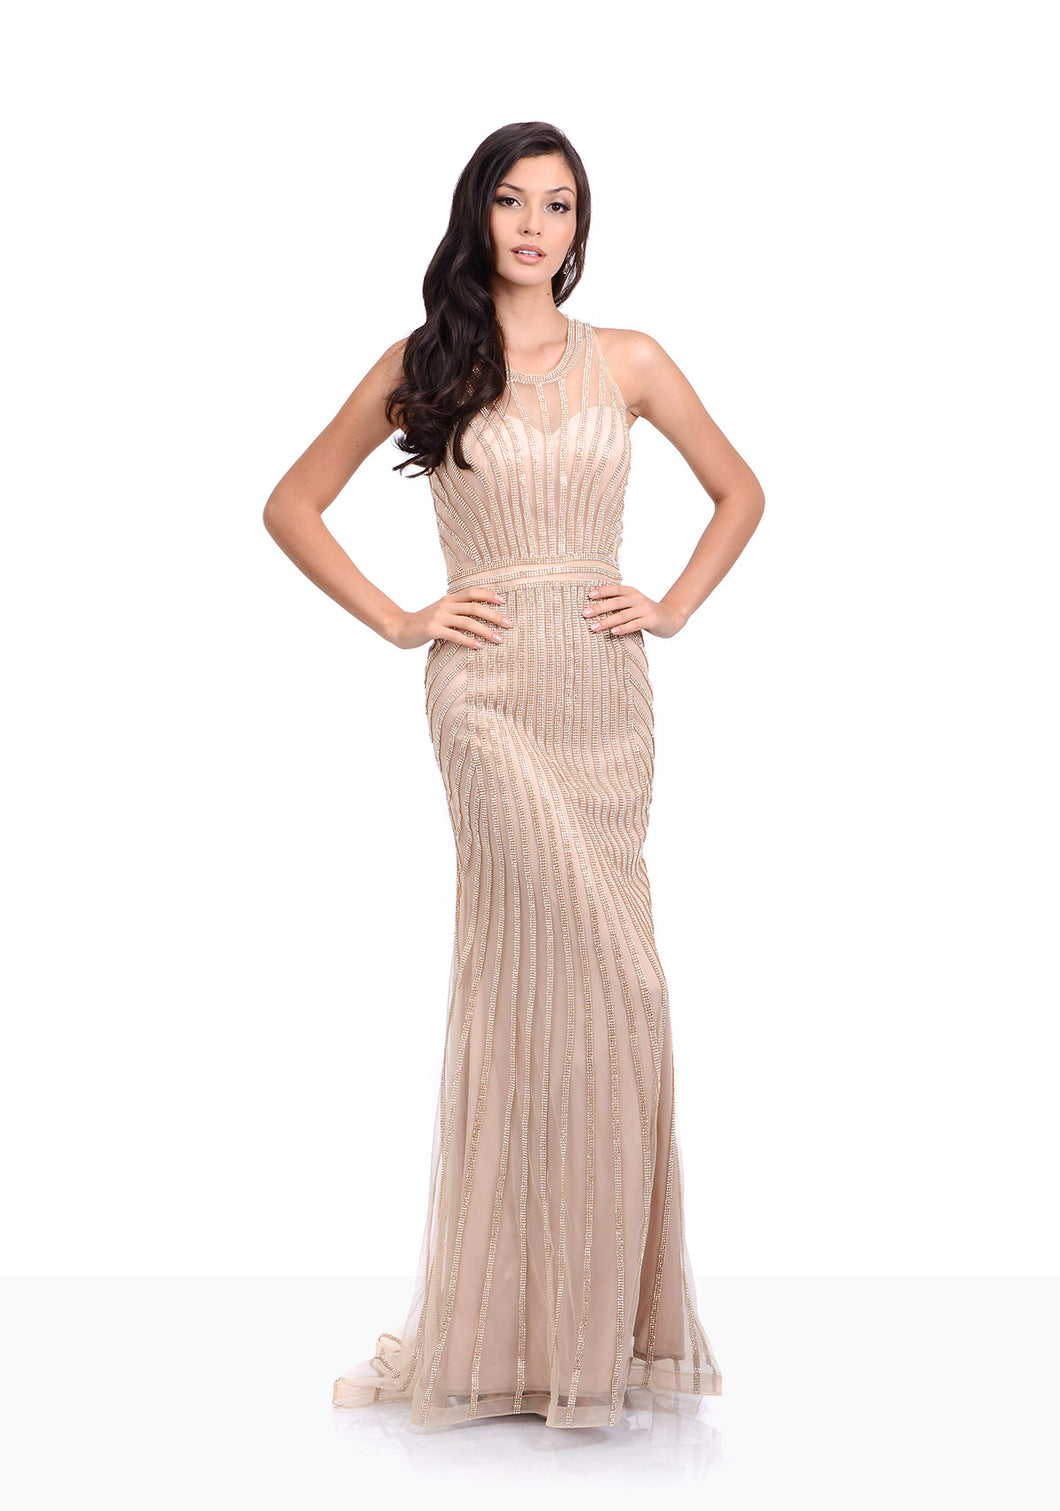 Gold high neckline embellished evening dress. Fitted evening dress perfect prom dress or an event